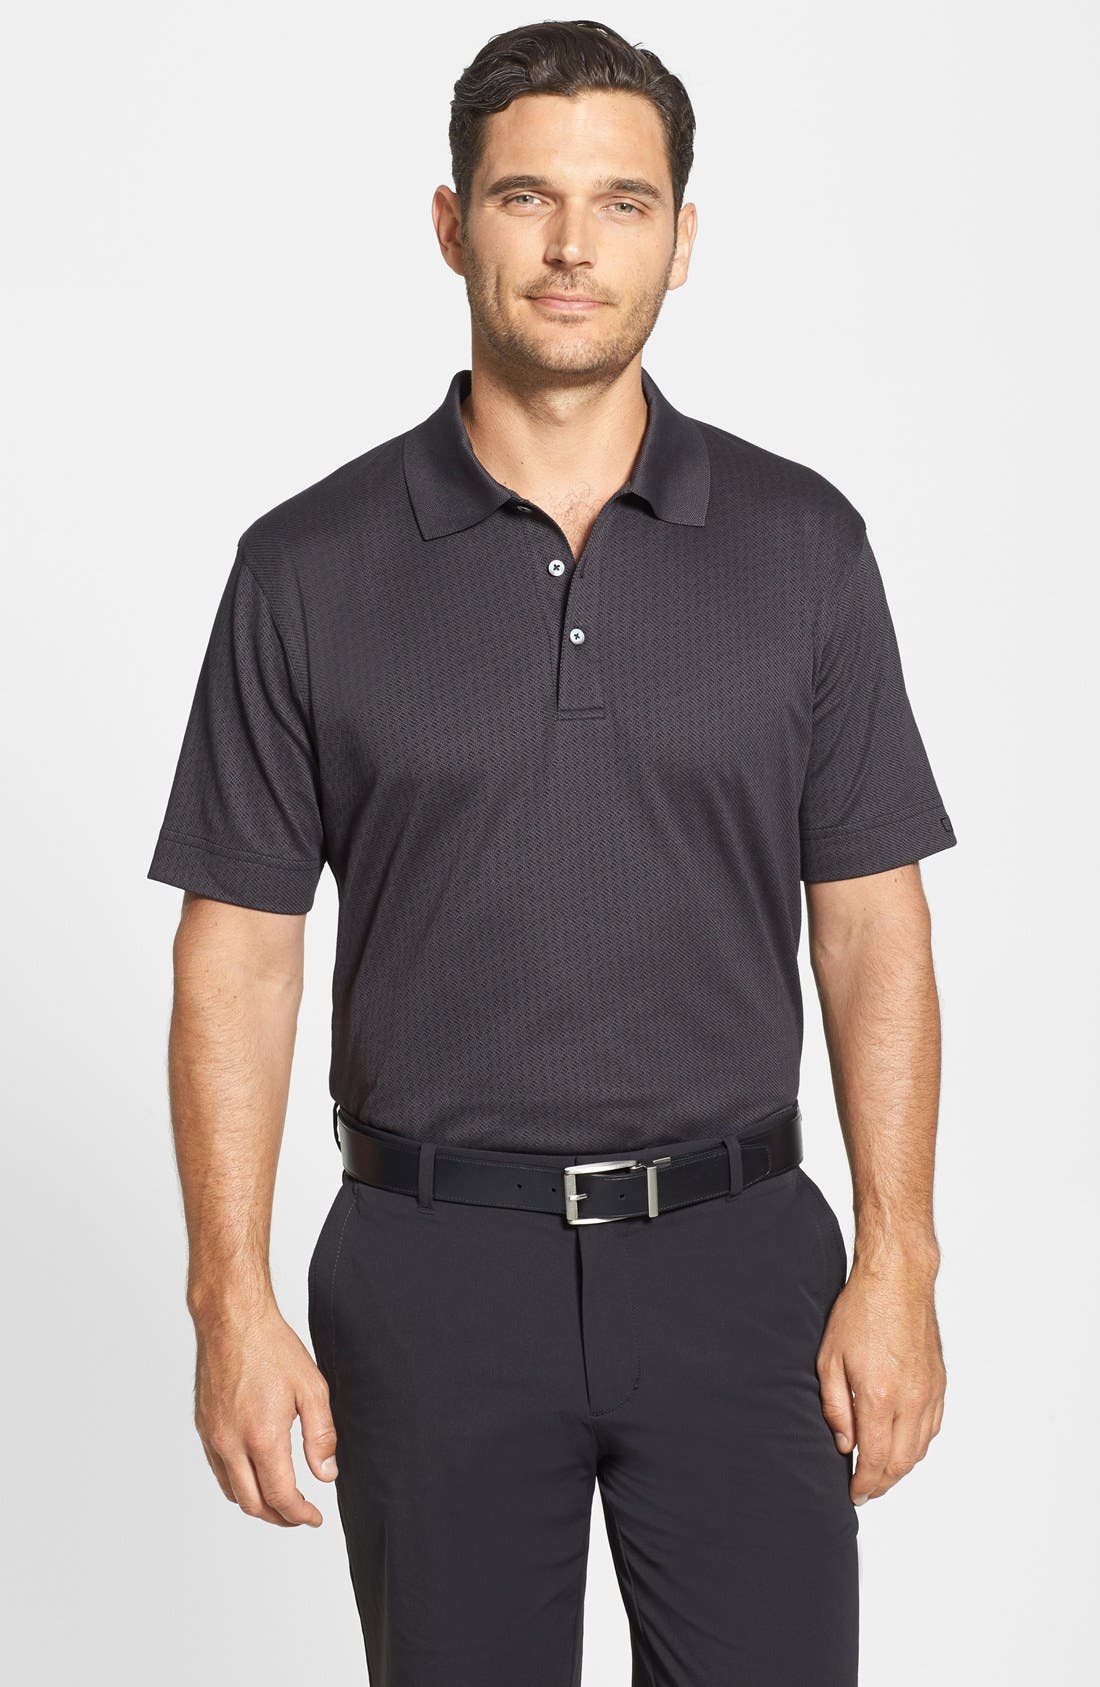 Main Image - Cutter & Buck 'Luxe - Faceted' DryTec Golf Polo